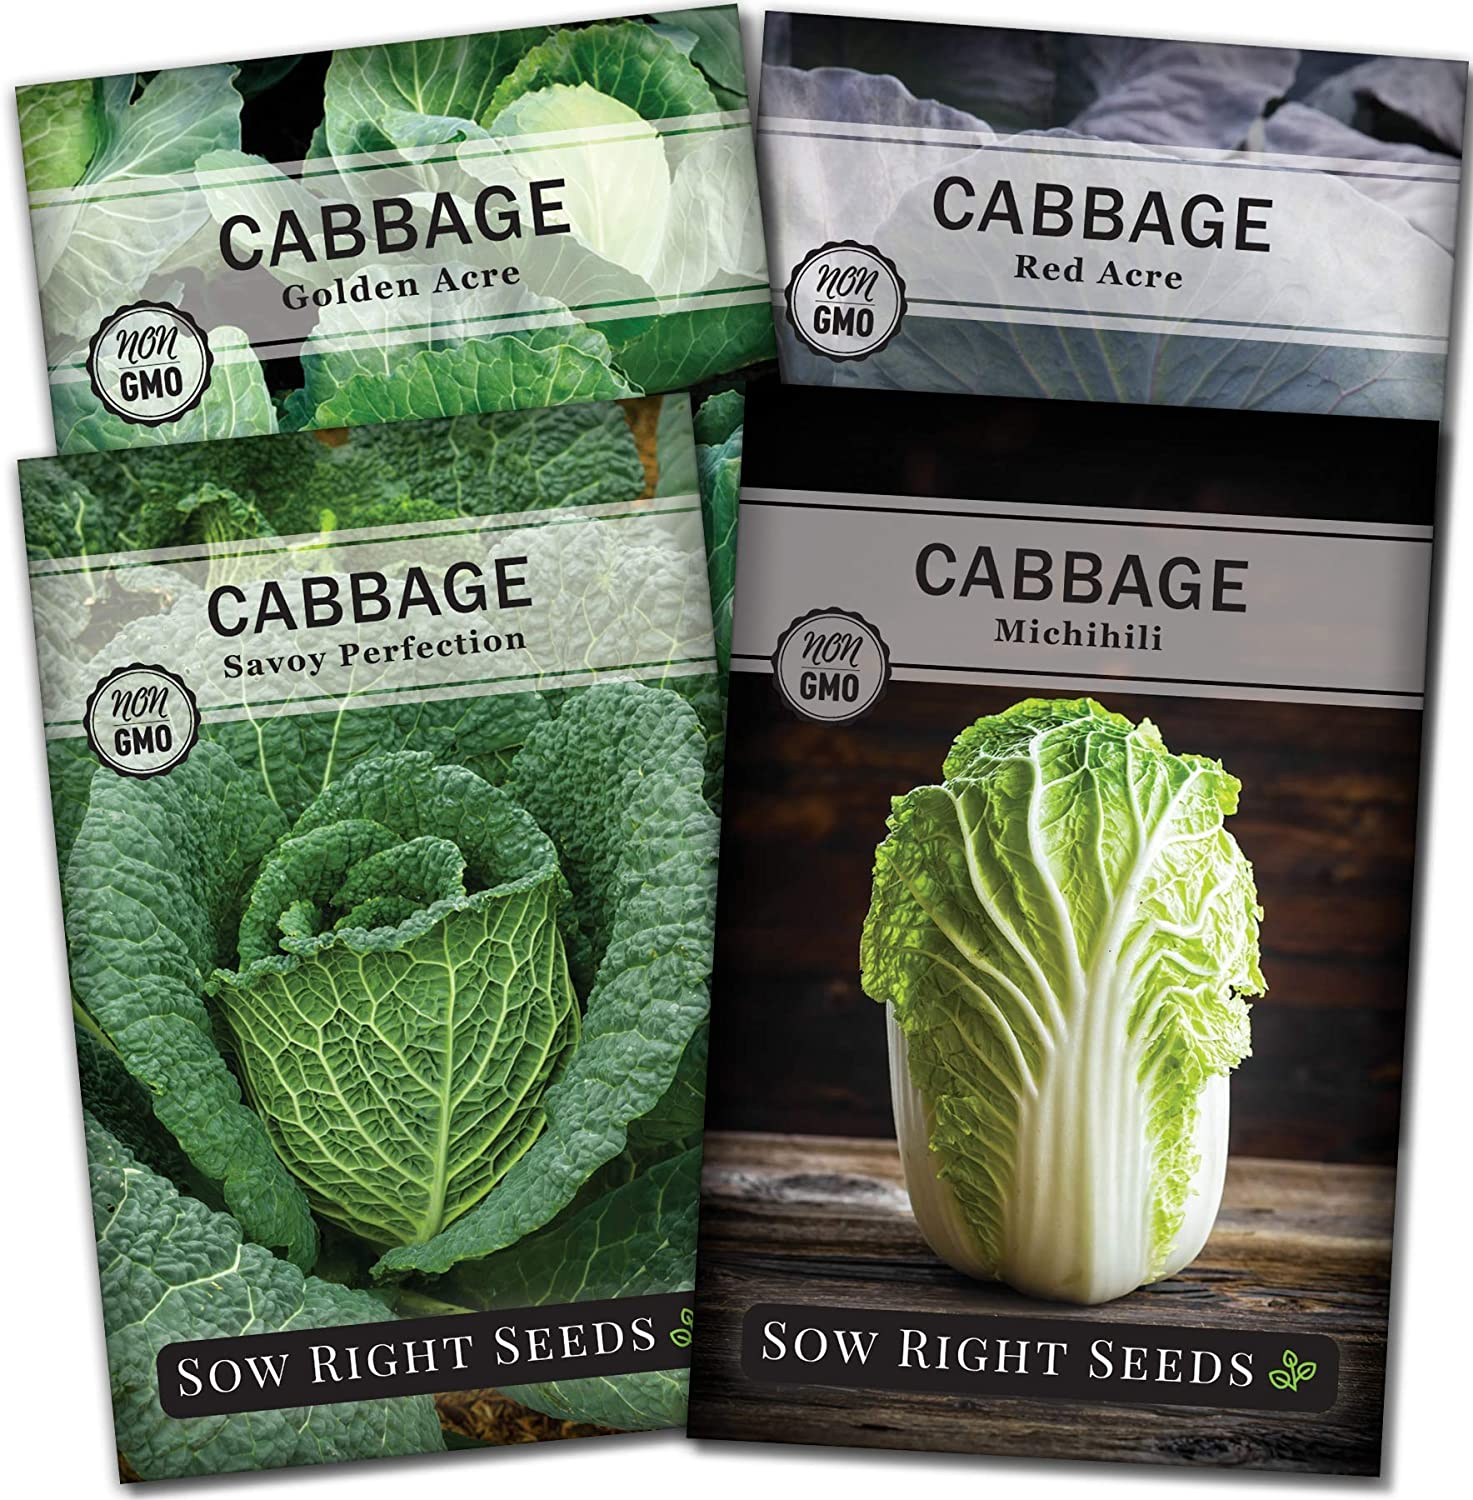 Amazon Com Sow Right Seeds Cabbage Seed Collection For Planting Savoy Perfection Red Acre Golden Acre And Michihili Nampa Cabbages Instruction To Plant And Grow A Non Gmo Heirloom Home Vegetable